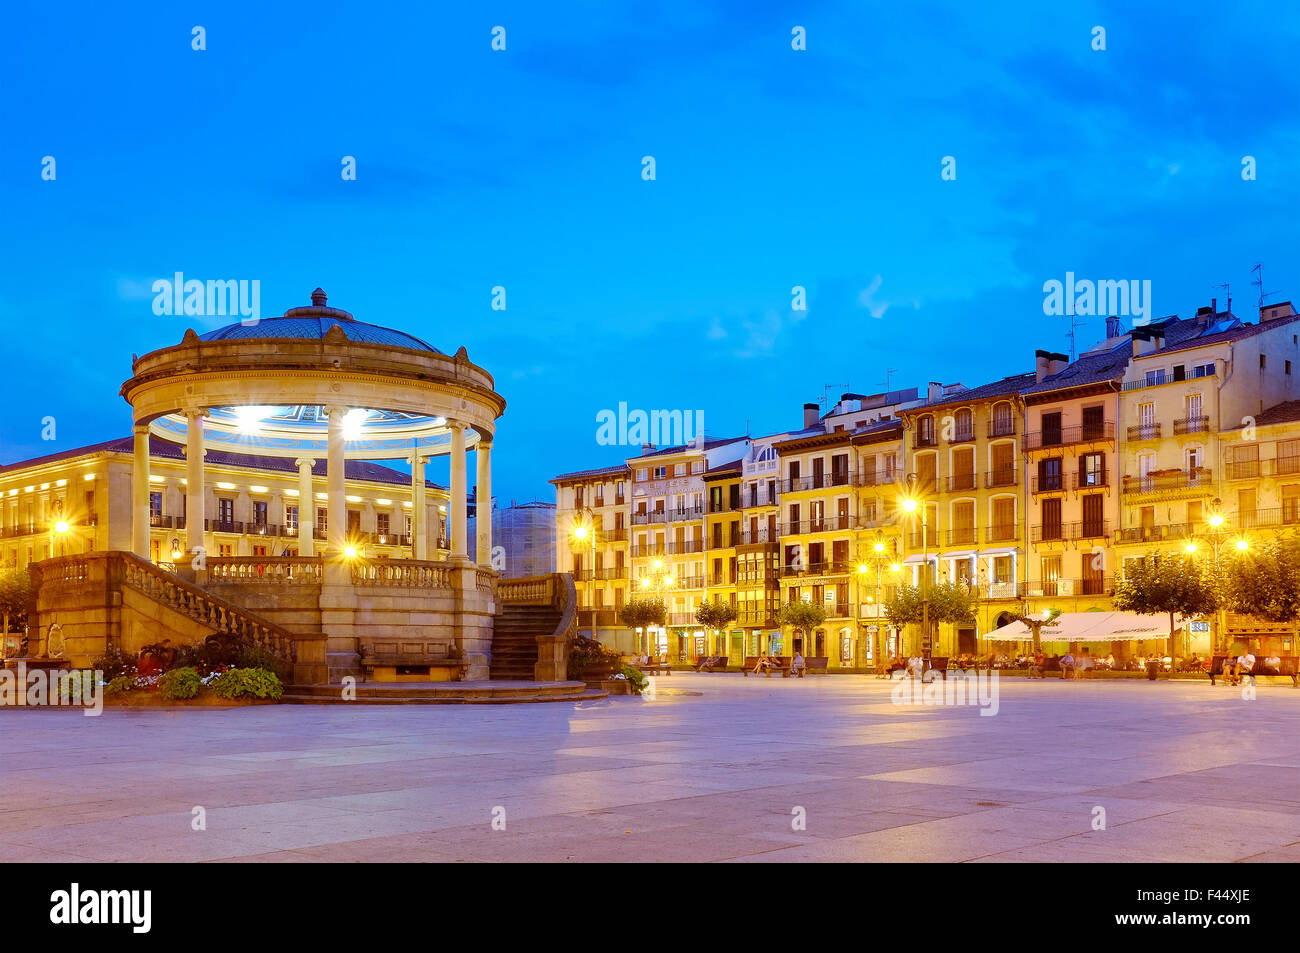 Bandstand in Plaza del Castillo, Pamplona, Navarre, Spain - Stock Image